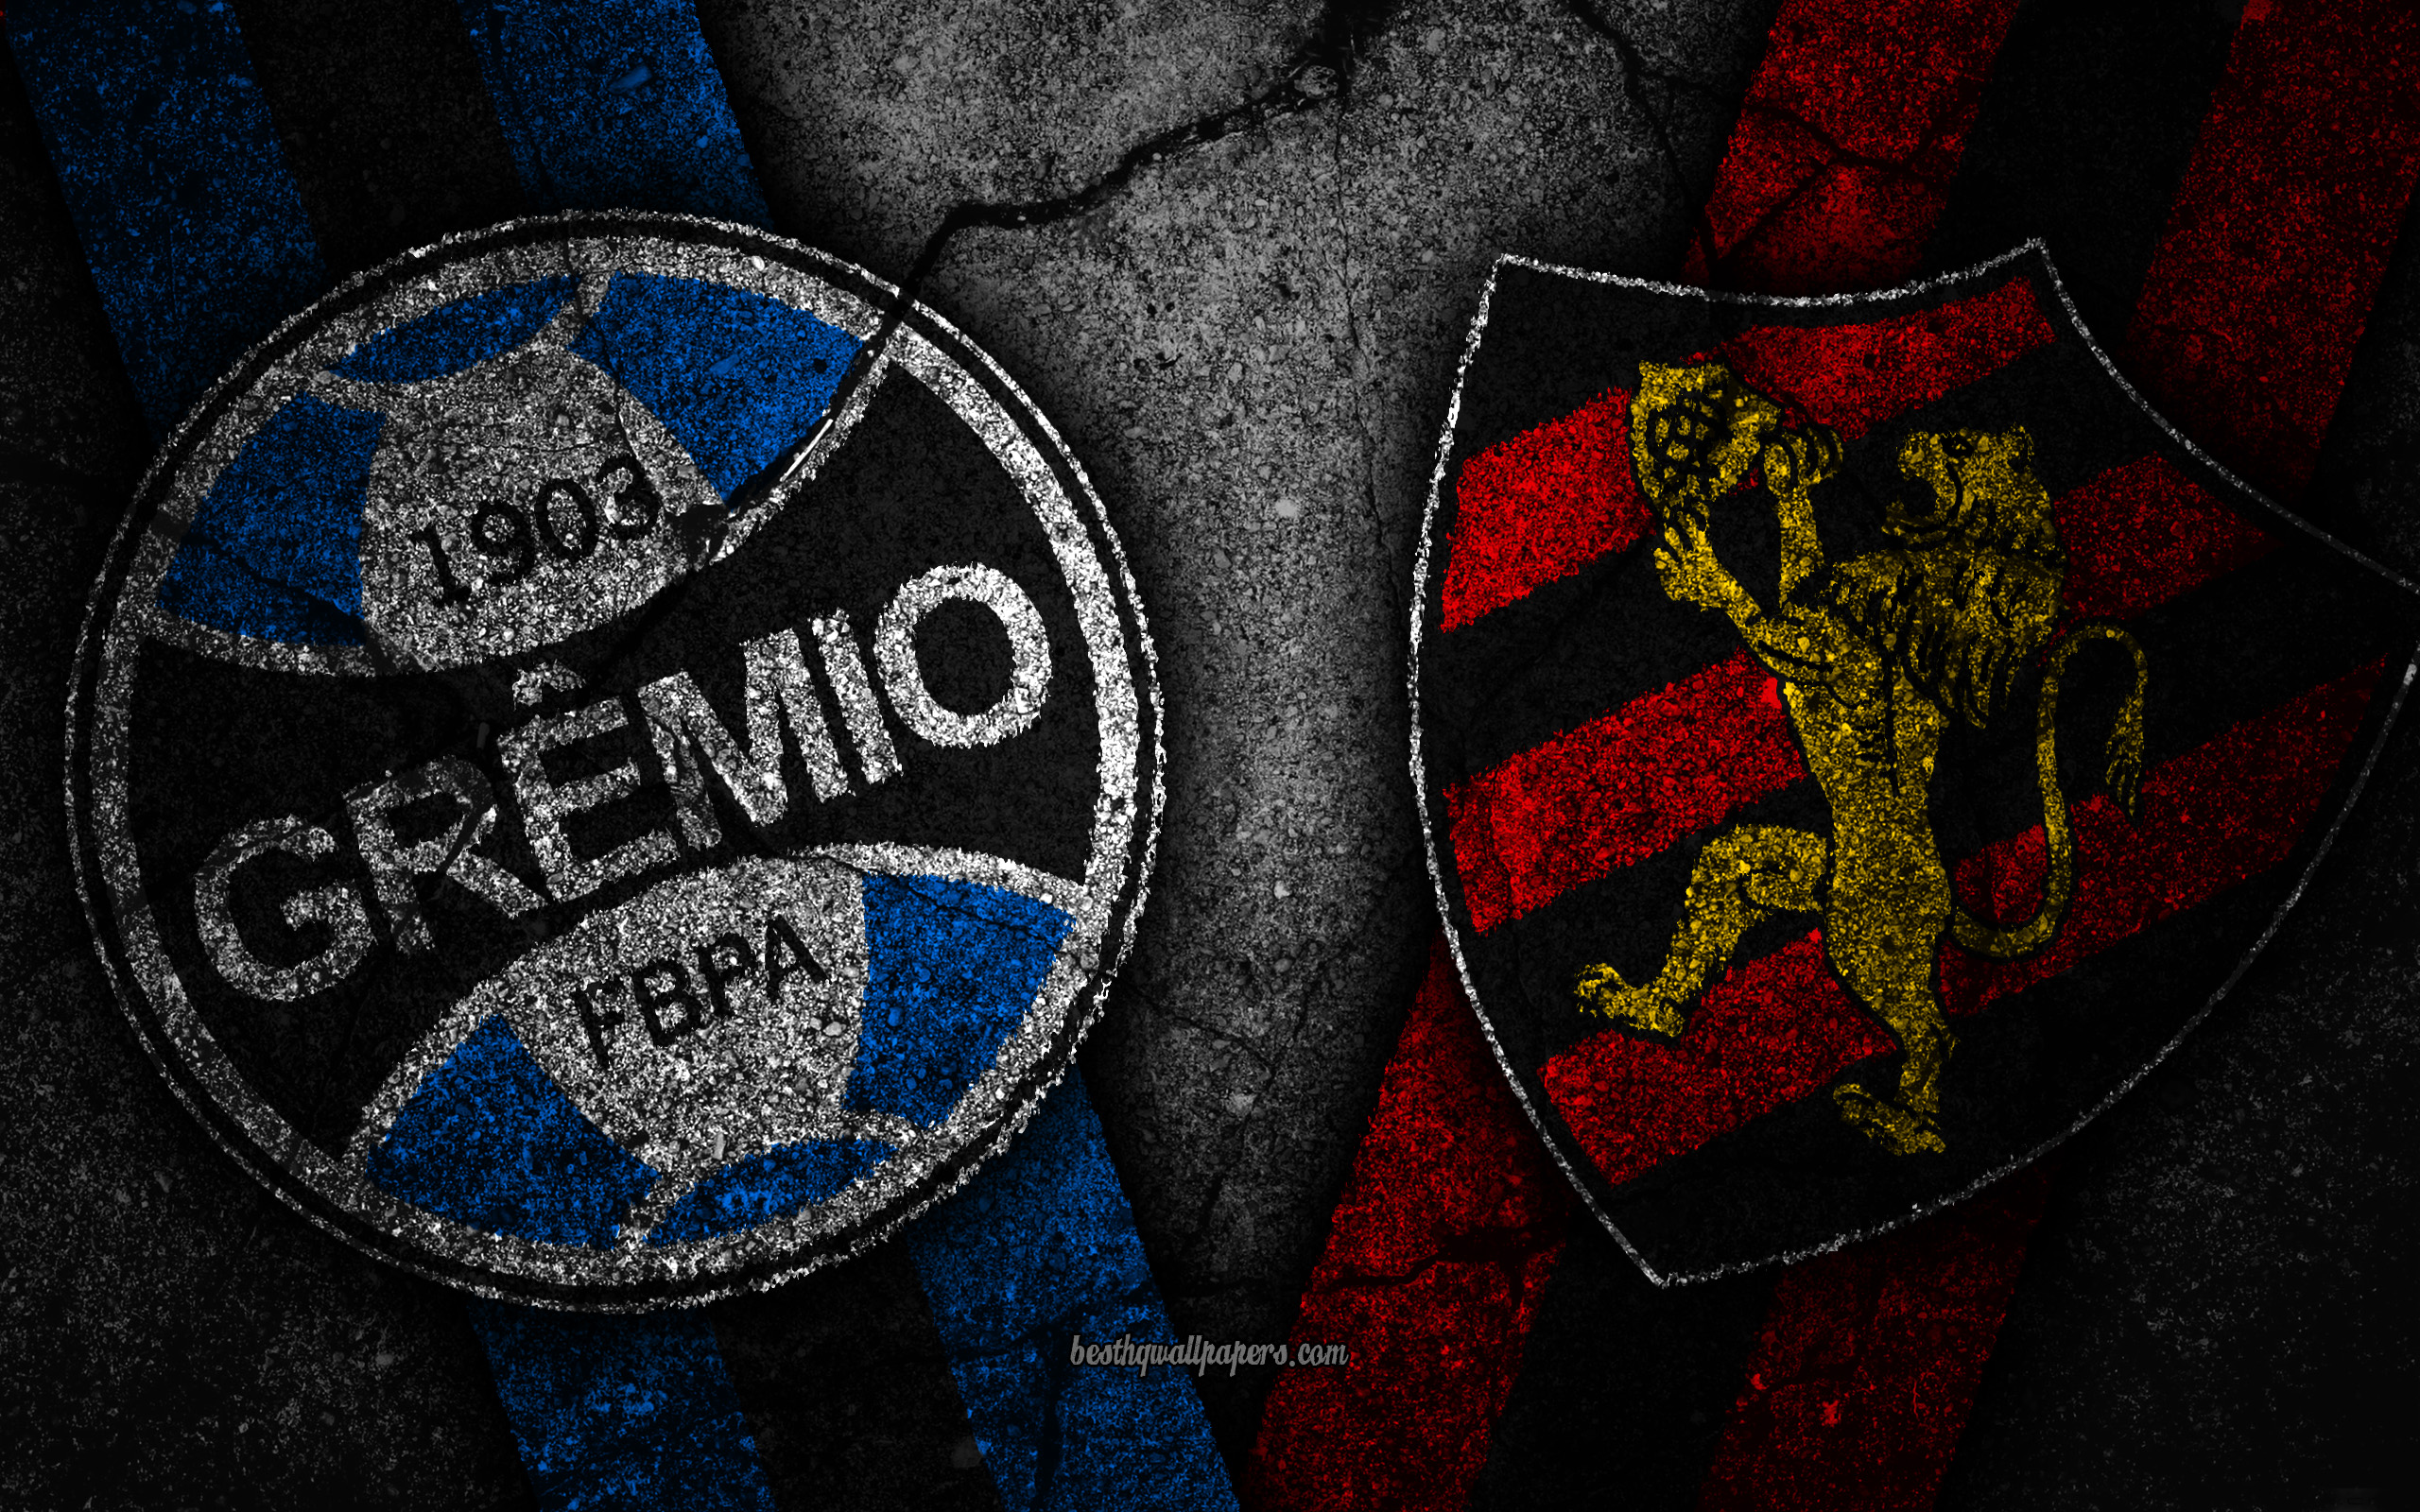 Download wallpapers Gremio vs Sport Recife Round 31 Serie A 2560x1600